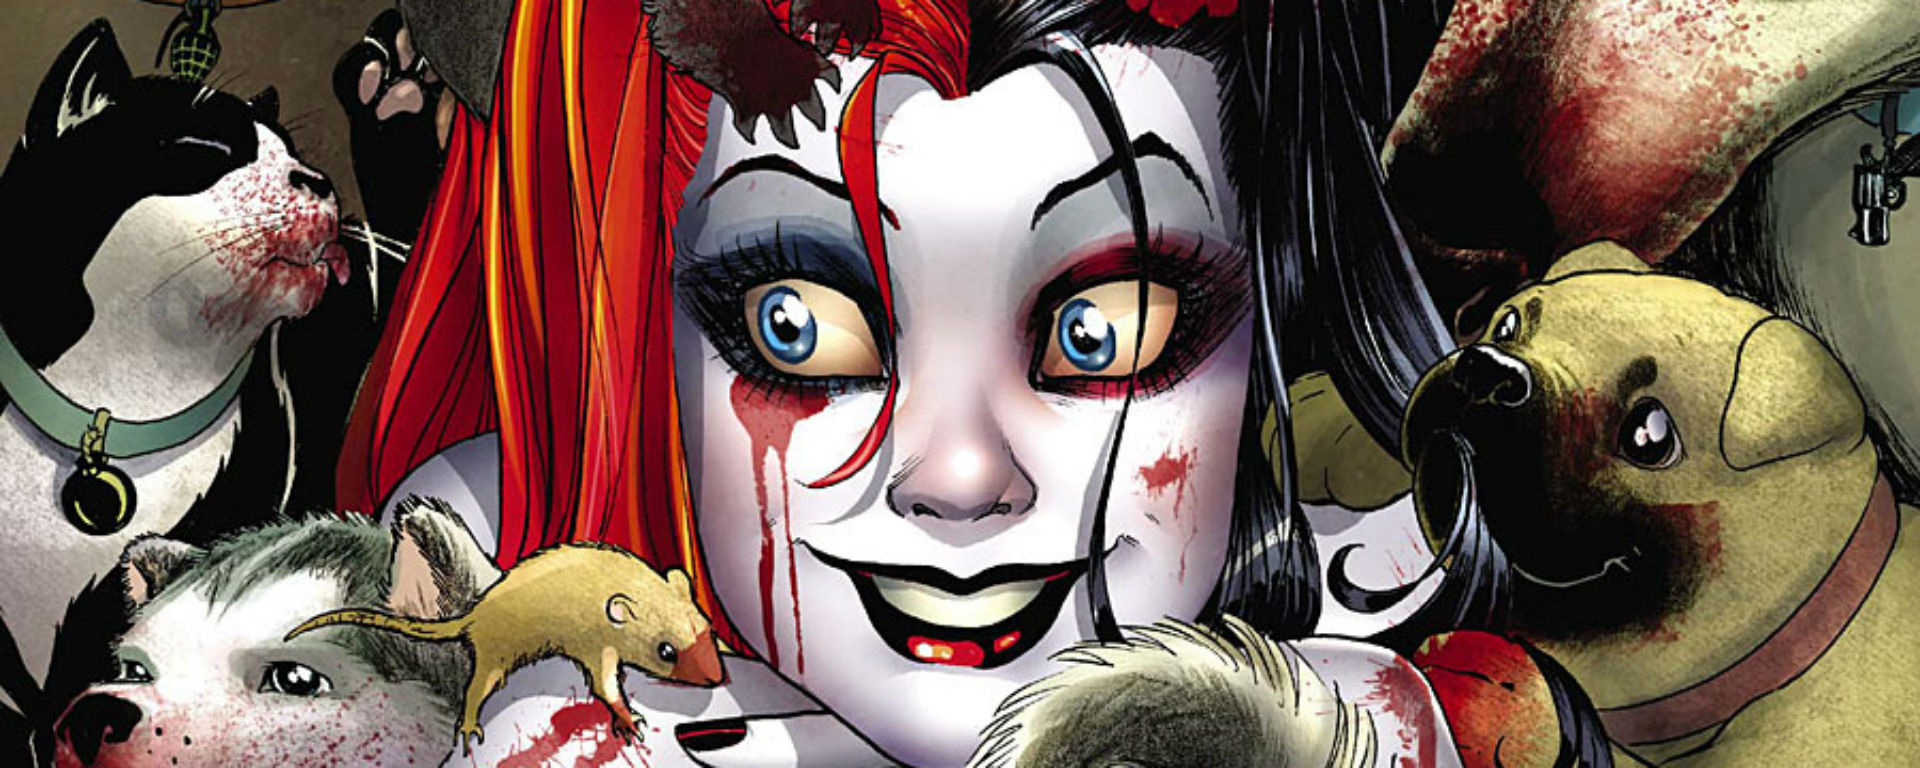 dc comics harley quinn 2 review feature image